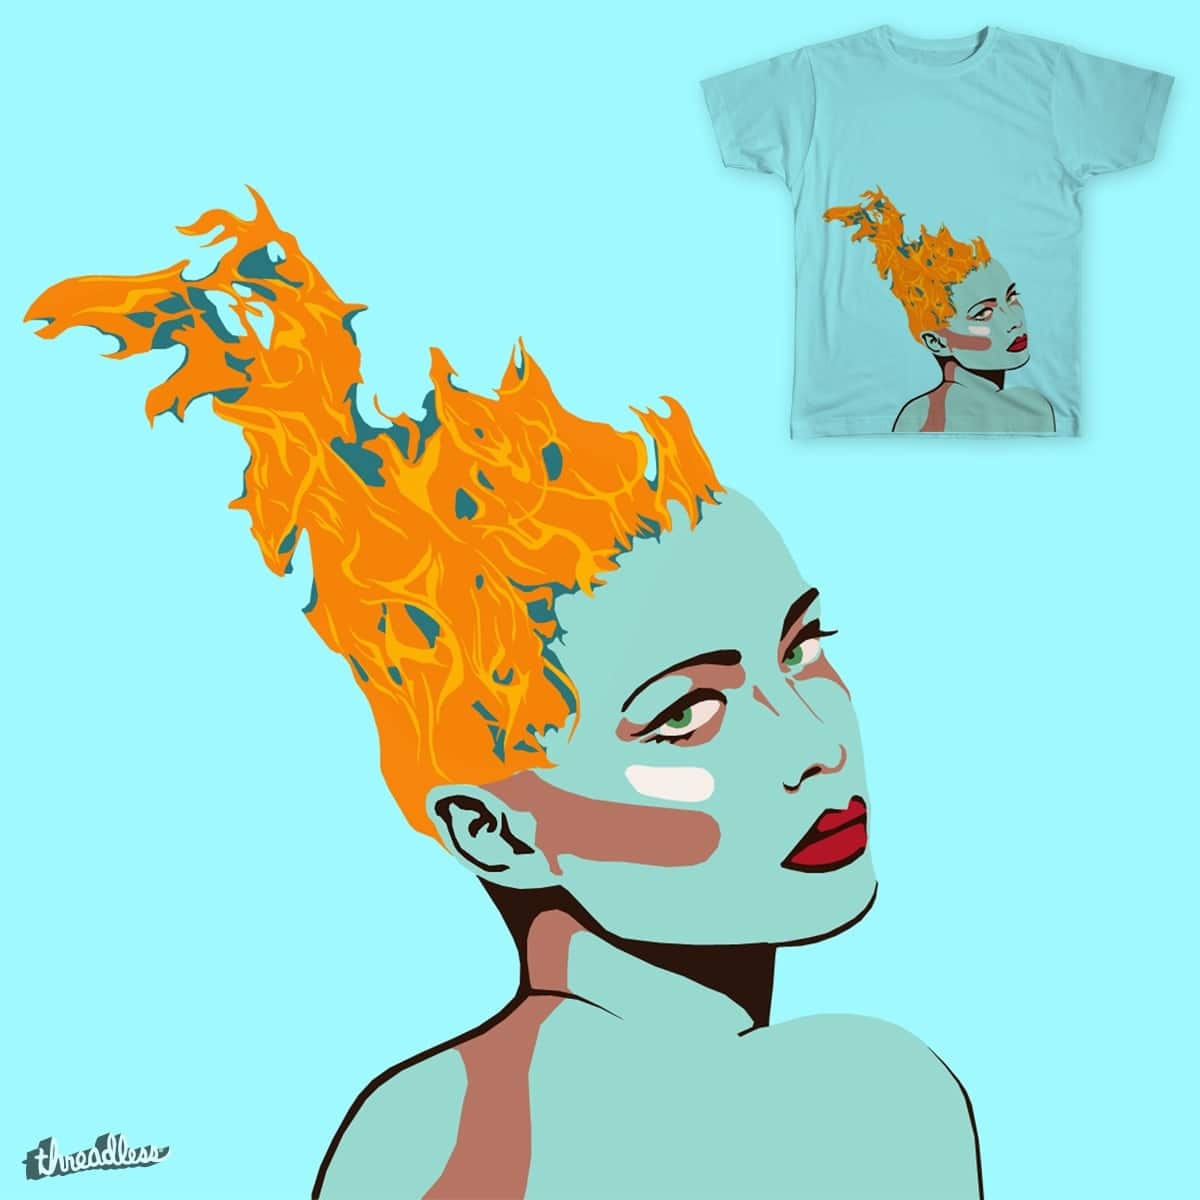 Flame headed girl by FloraNPaterson on Threadless